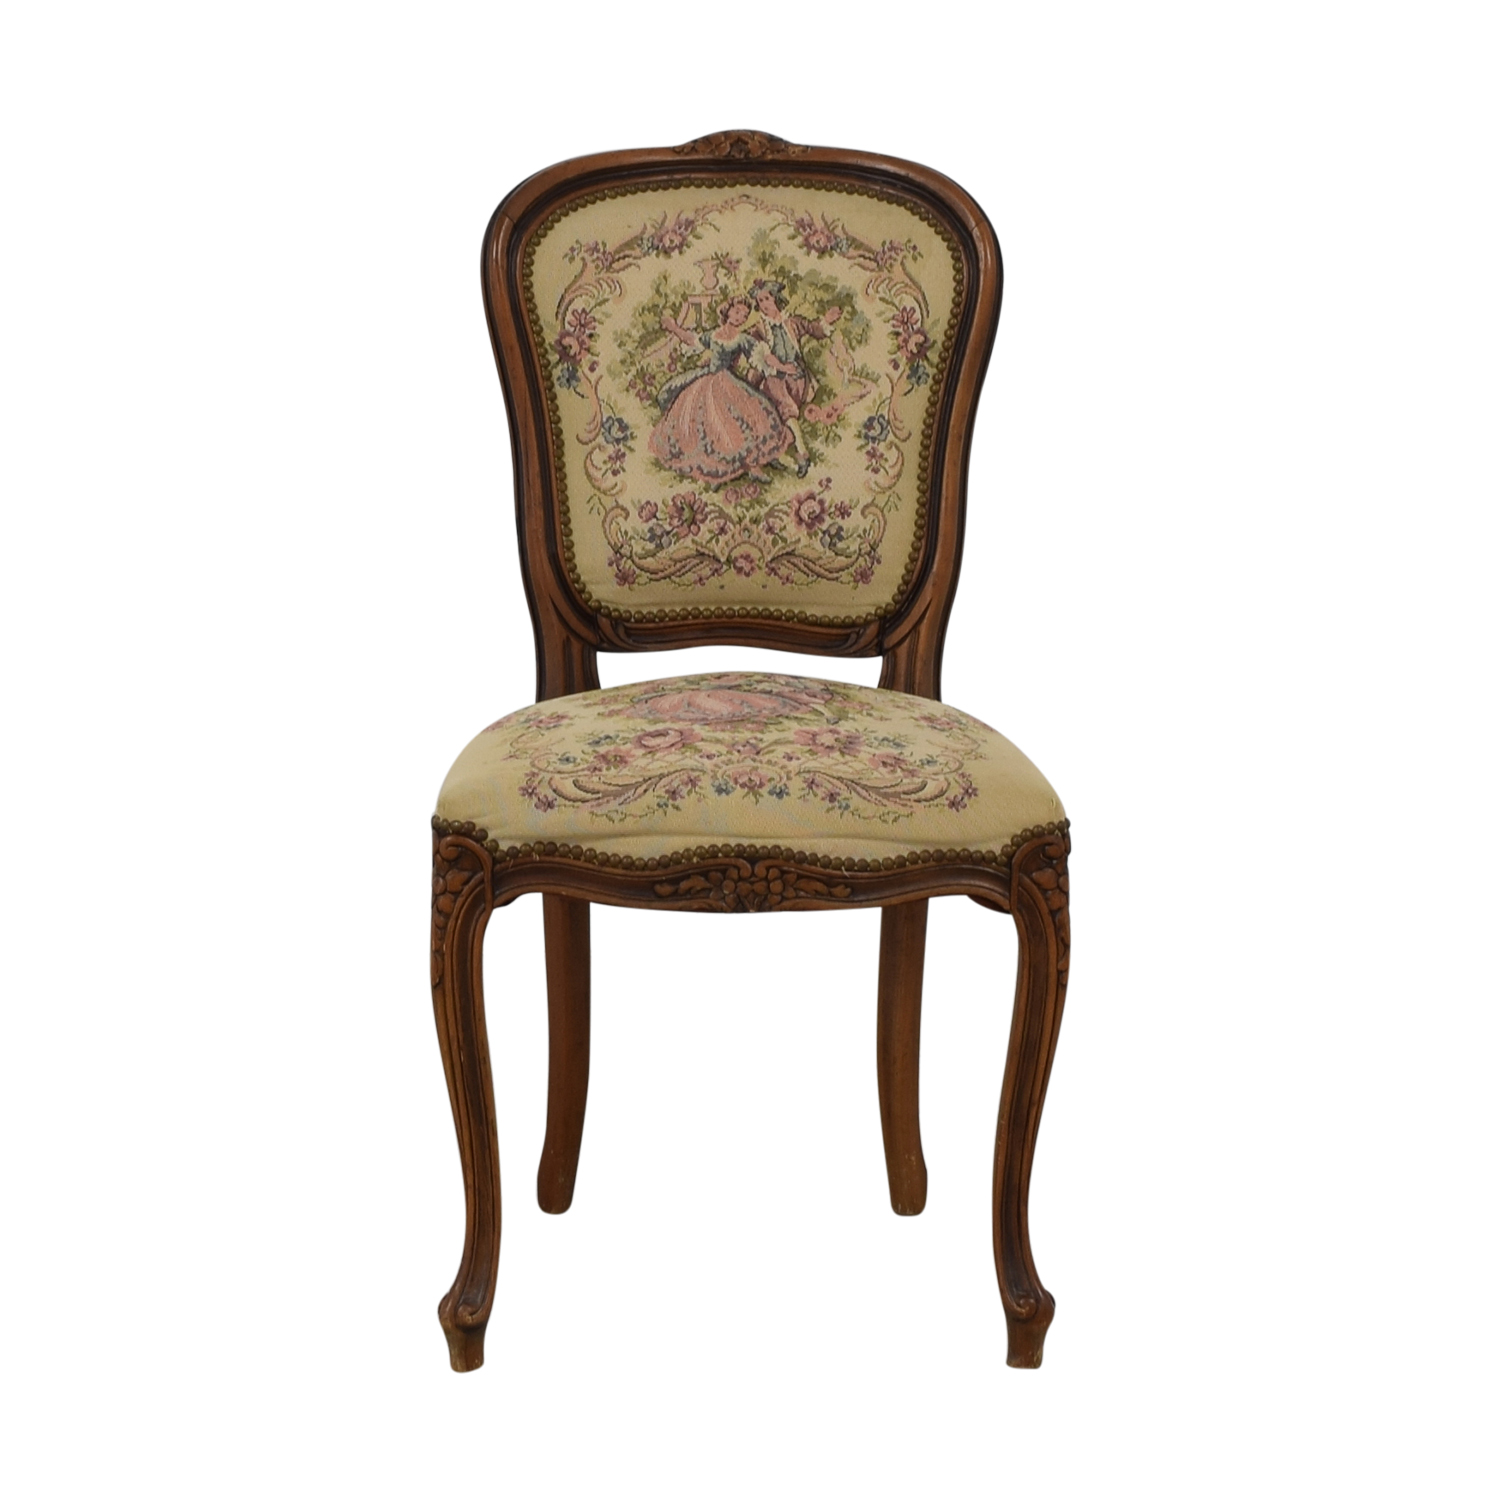 Chateau Dax Furniture Reviews: Chateau D'Ax Chateau D'Ax Antique Chair / Chairs